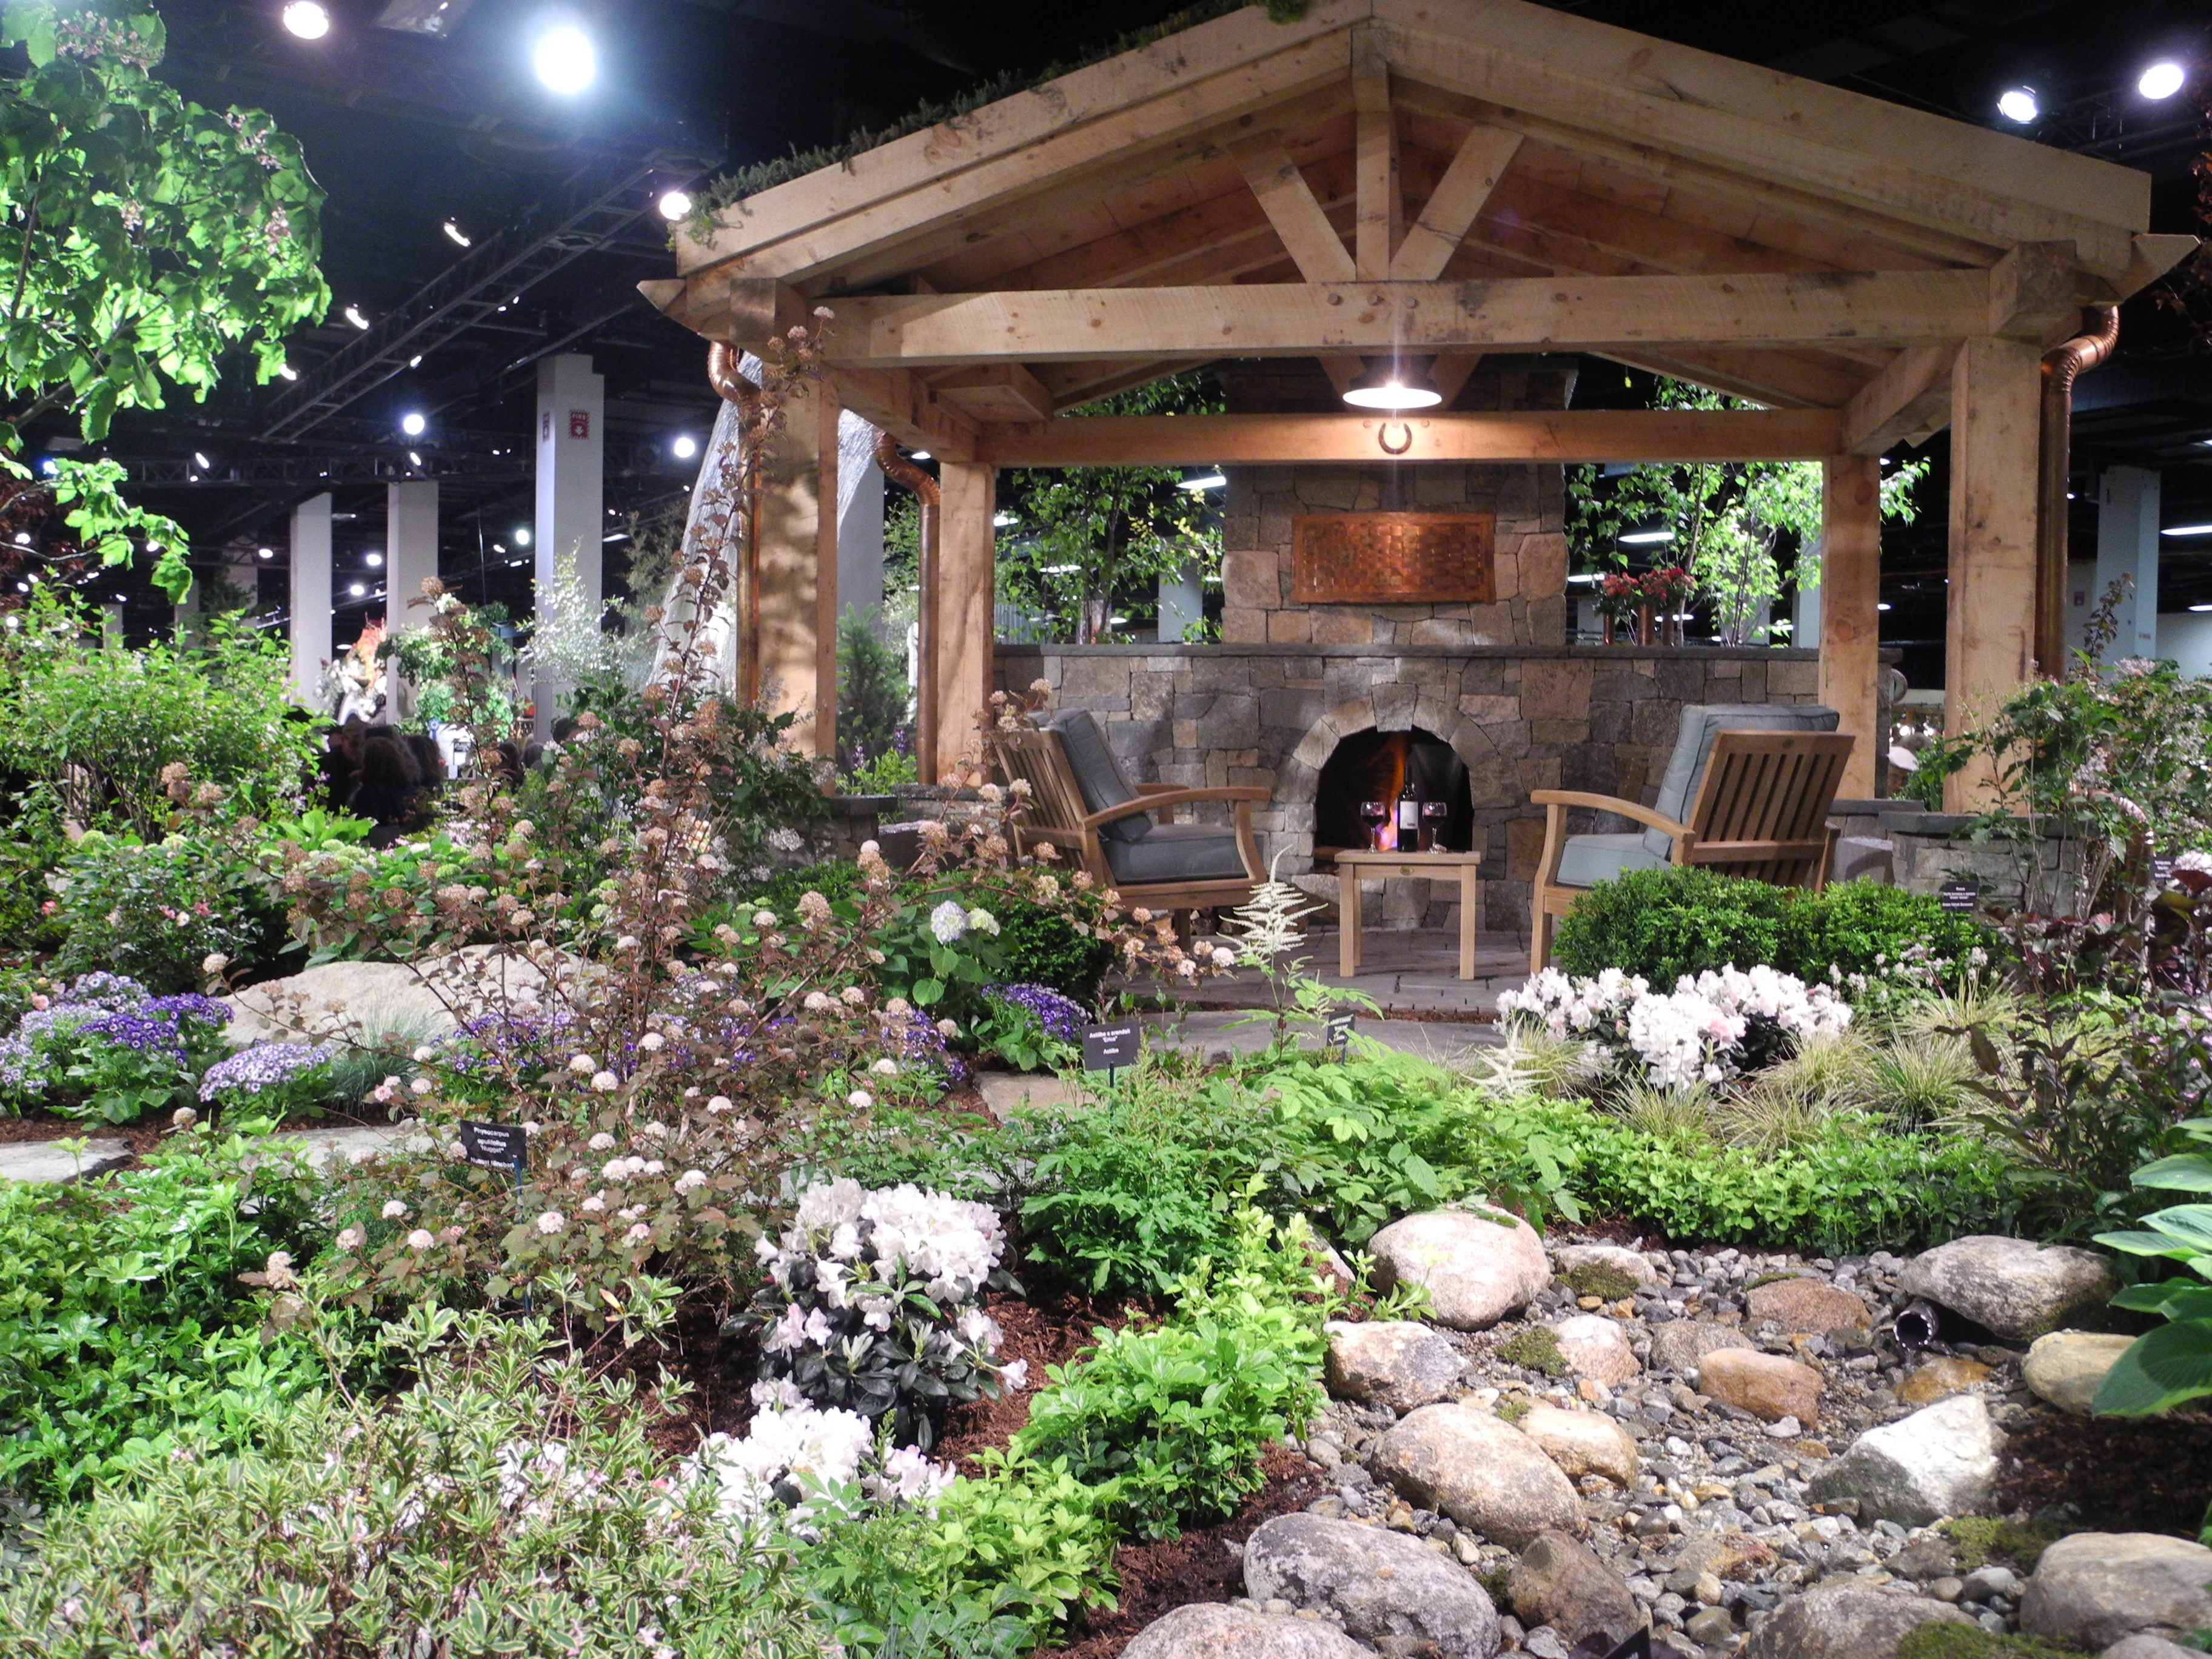 Boston flower and garden show 2013 for Boston flower and garden show 2017